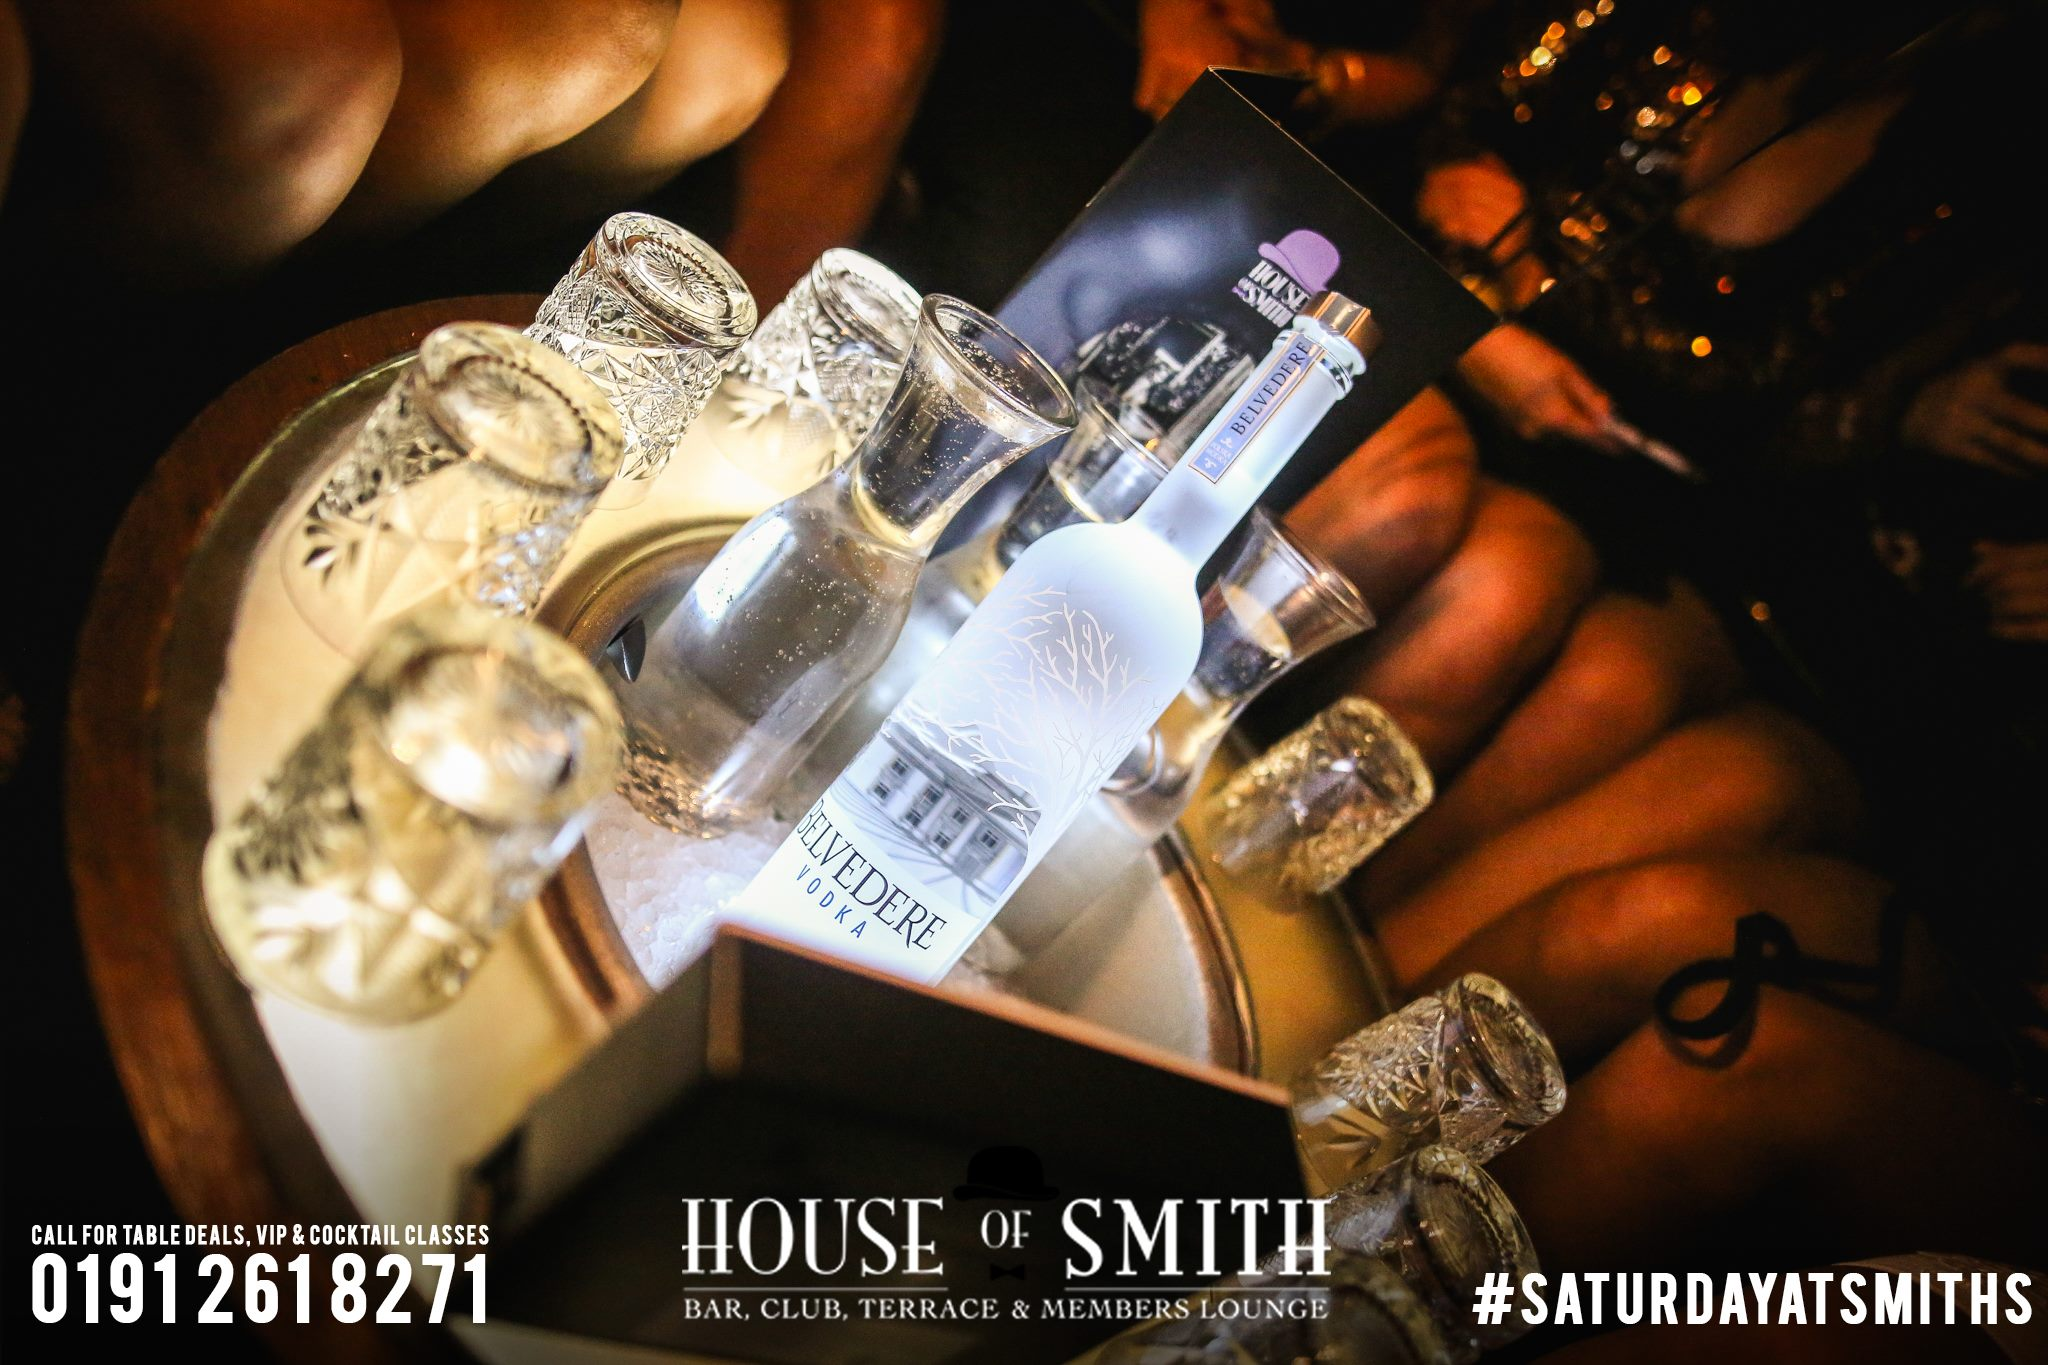 House of Smith Bar Review, with an image of Belvedere vodka in an ice bucket with glasses and mixers